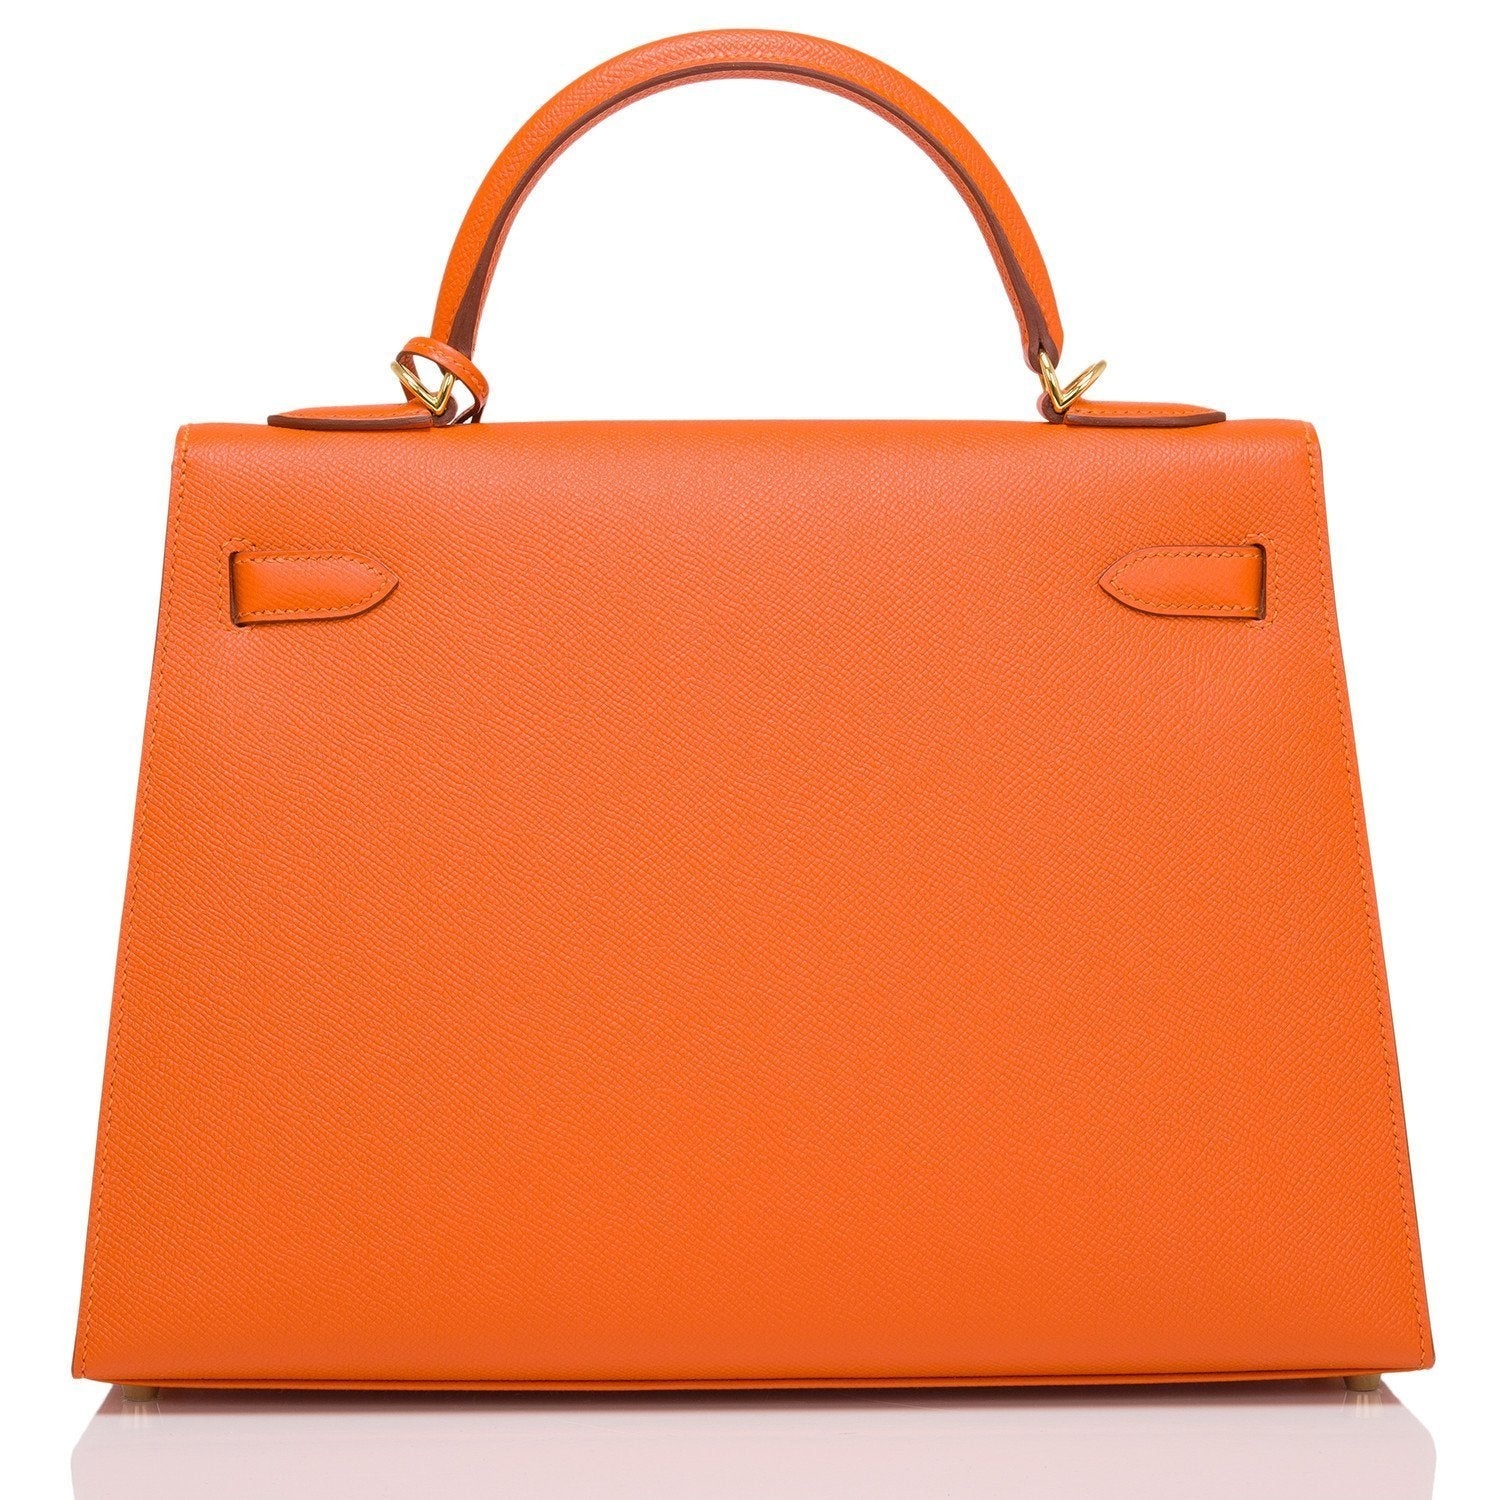 new style hermes orange h epsom sellier kelly 32cm gold hardware 02890 1d16a a13fa7b5c2d0a